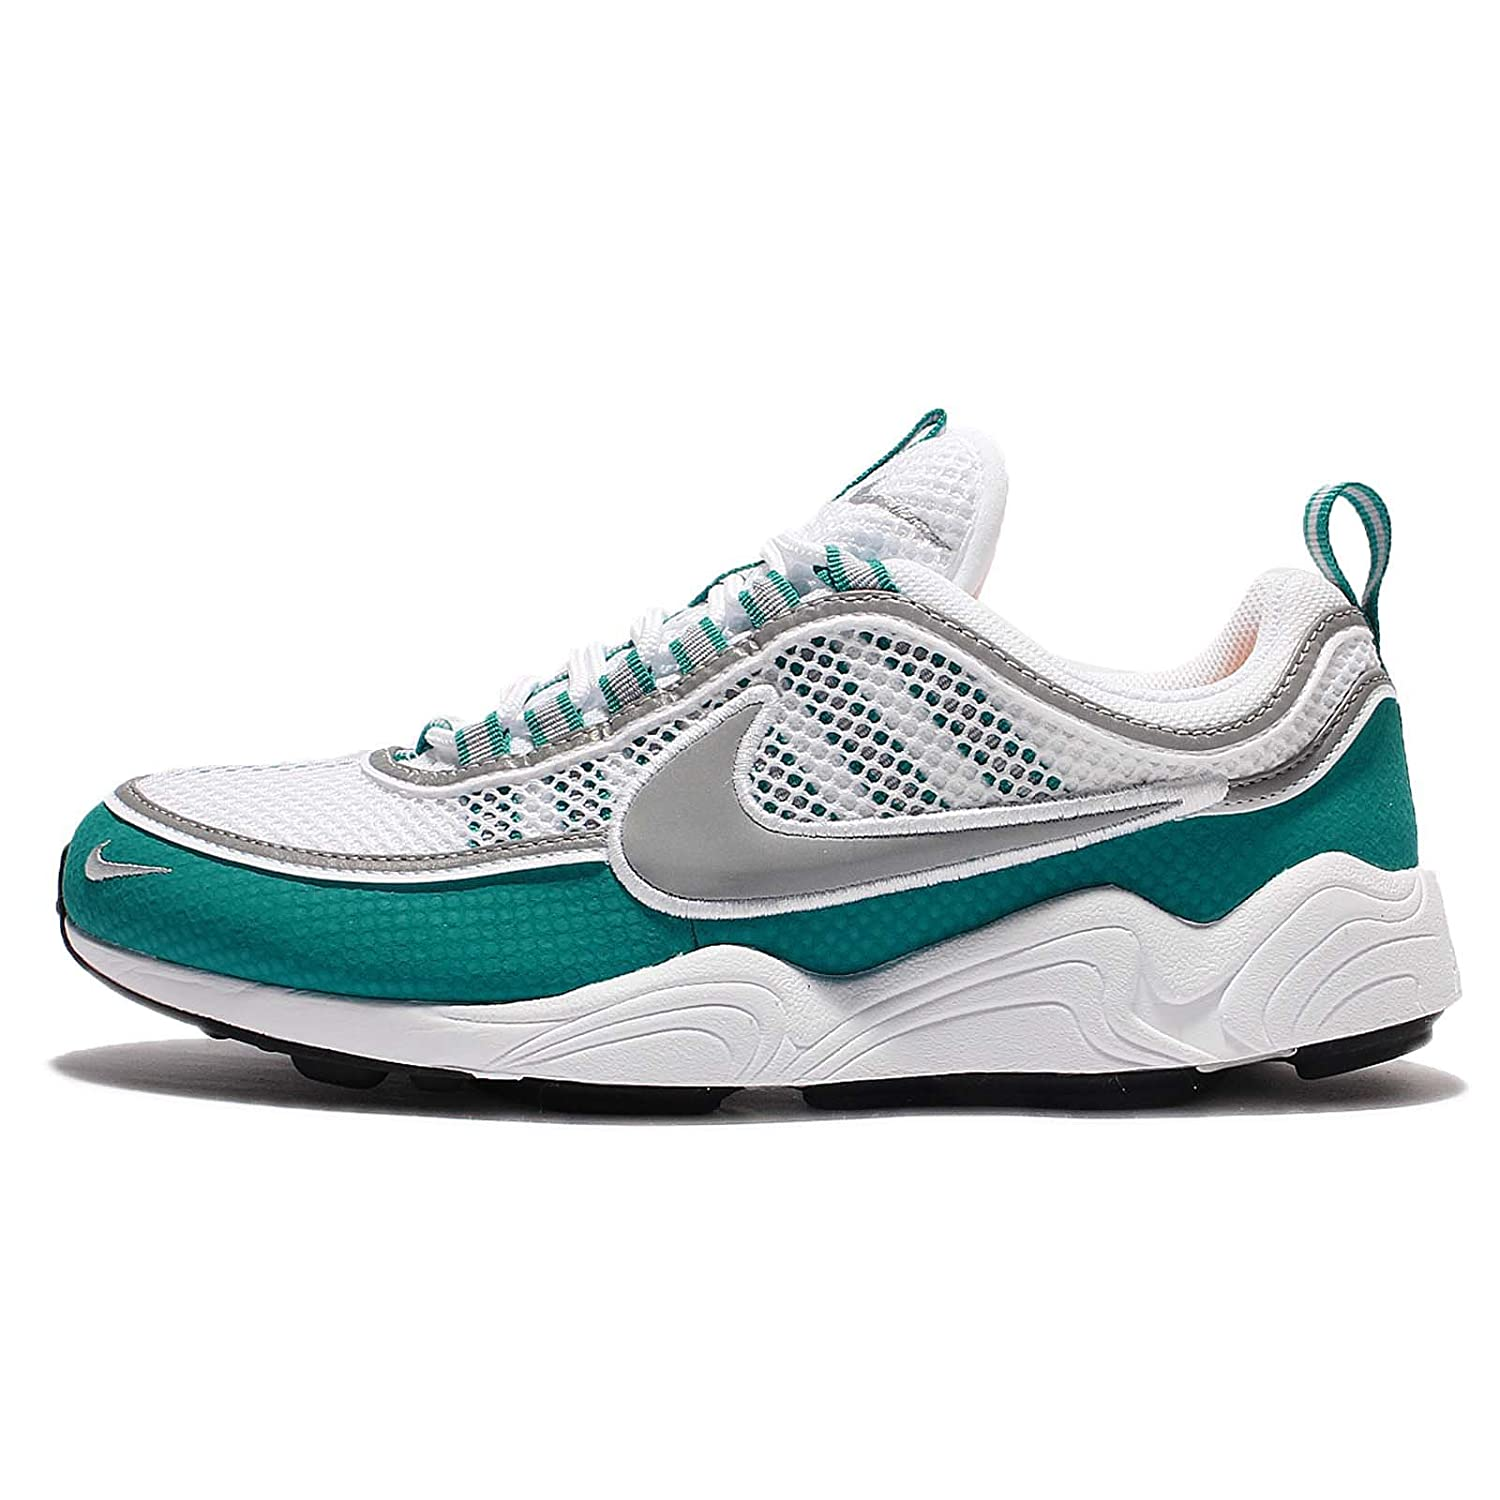 outlet store 0cdd7 4358f Sneakers Air Zoom Spiridon Hommes Blanc Vert Taille 47,5  Amazon.fr   Chaussures et Sacs